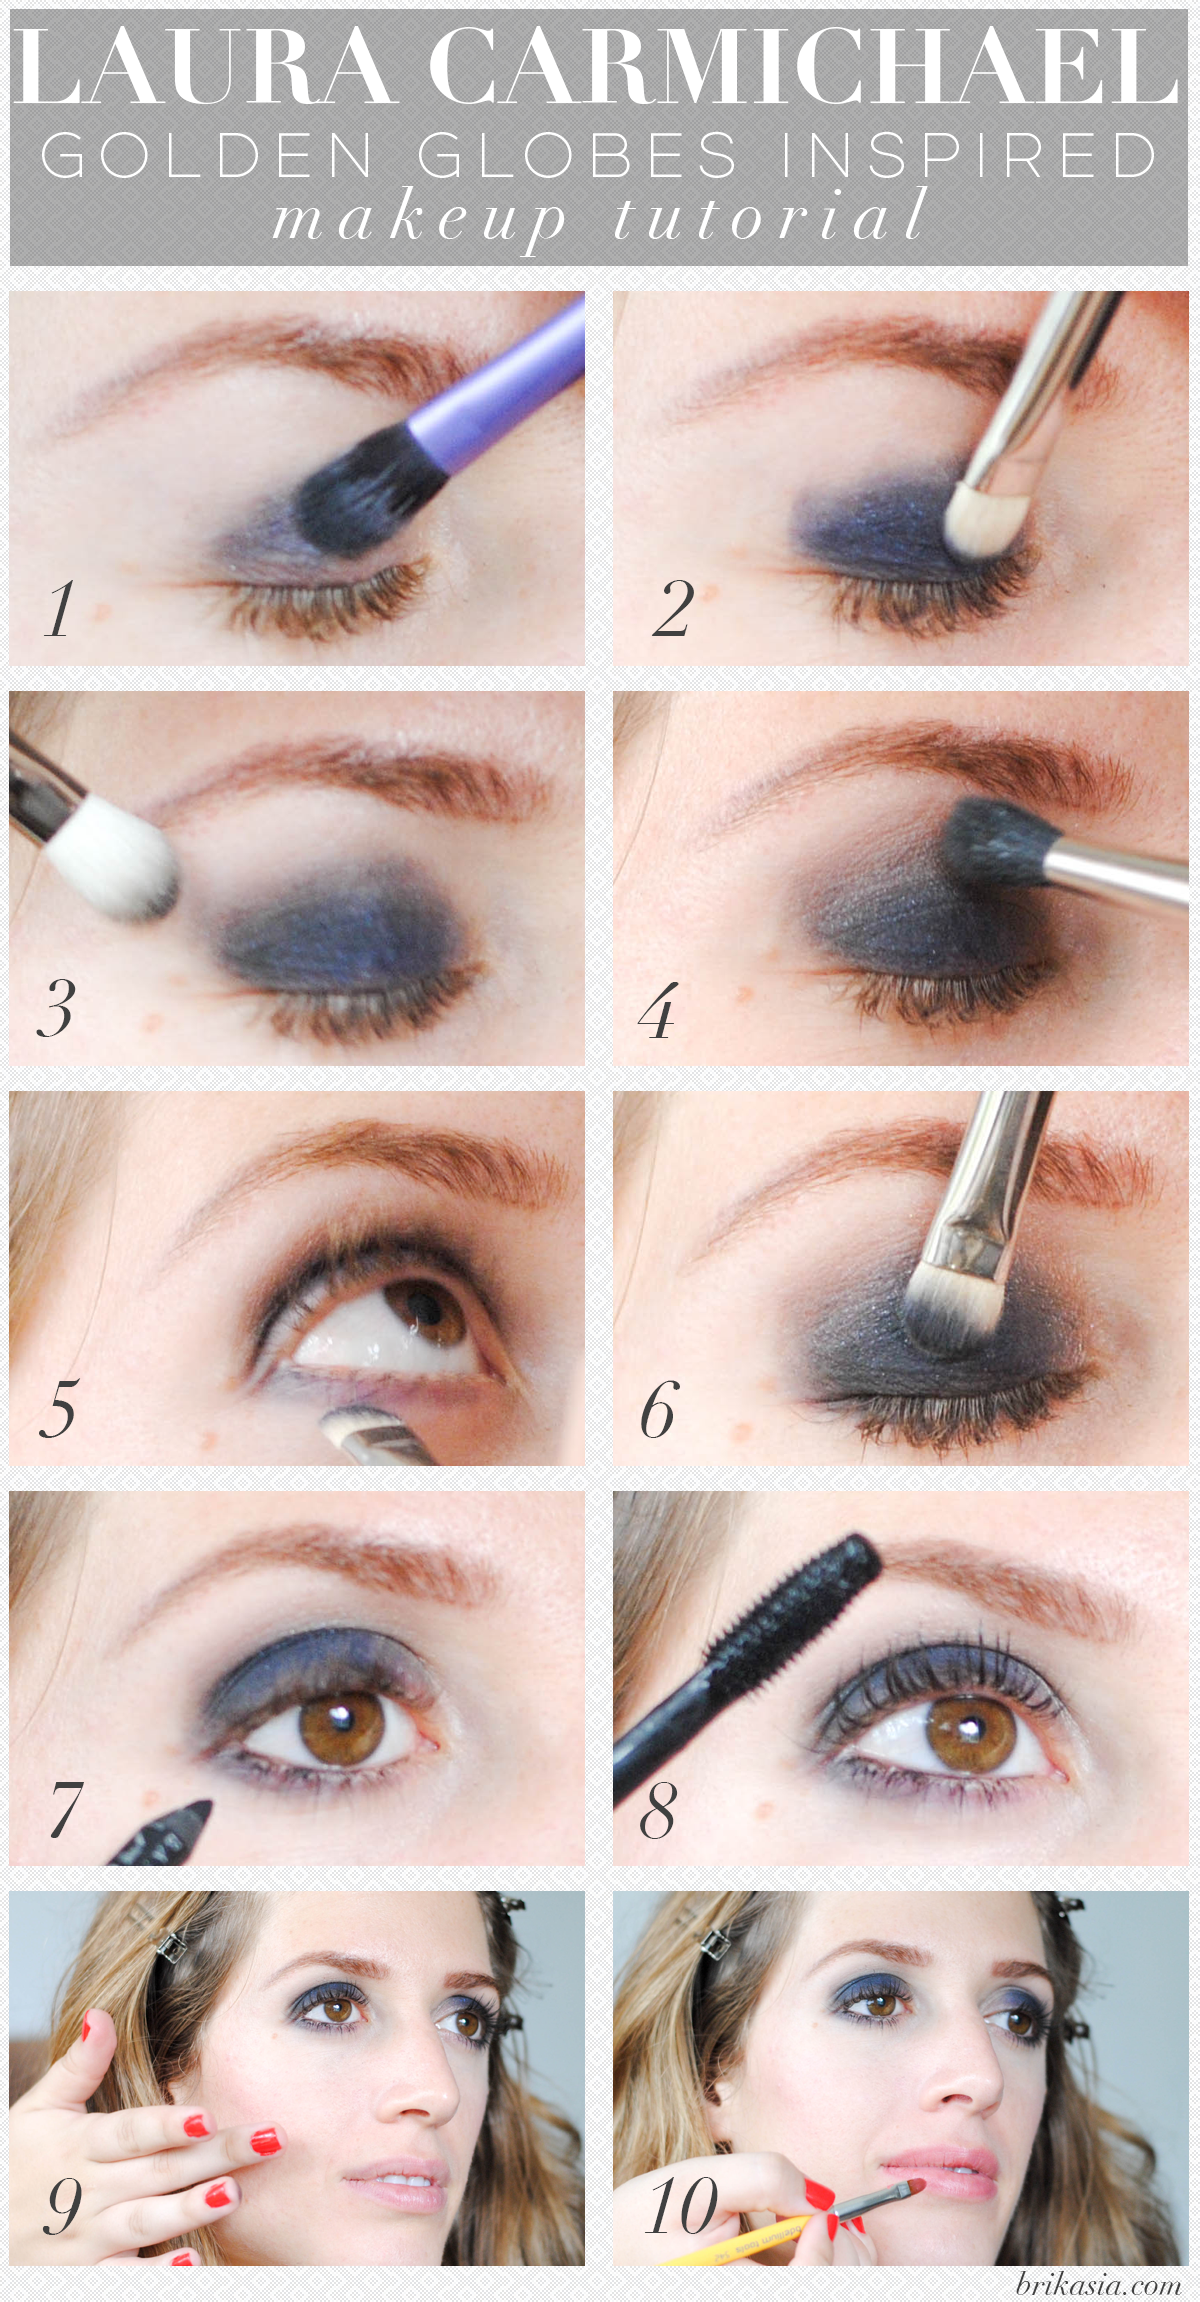 Blue Smoky Eye Makeup Tutorial, Laura Carmichael Golden Globes 2015 Makeup Tutorial, how to do a smoky eye